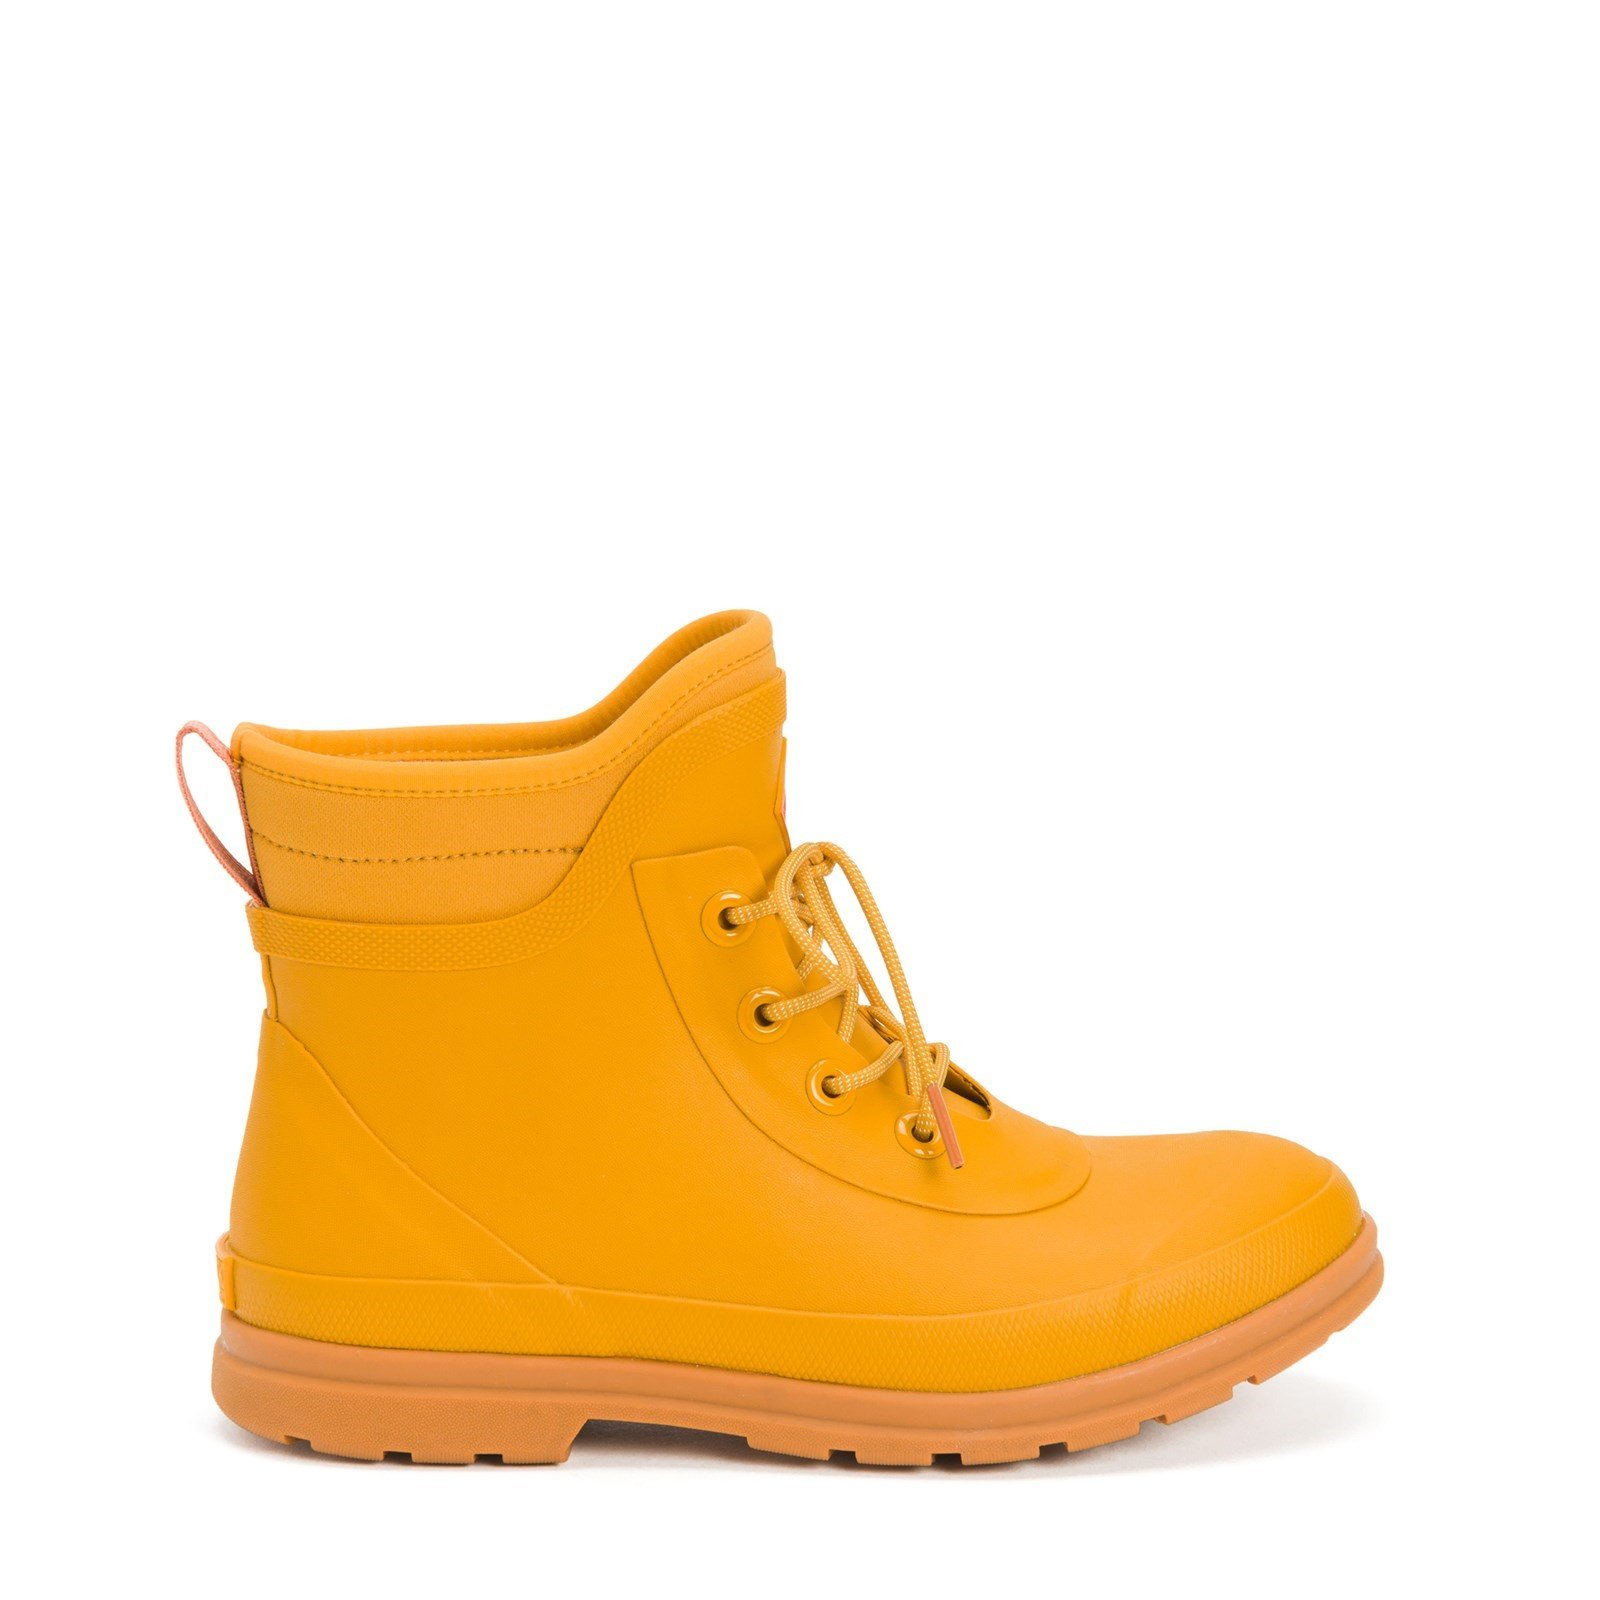 Muck Boots Women's Originals Lace Up Ankle Boot Various Colours 30079 - Sunflower 8